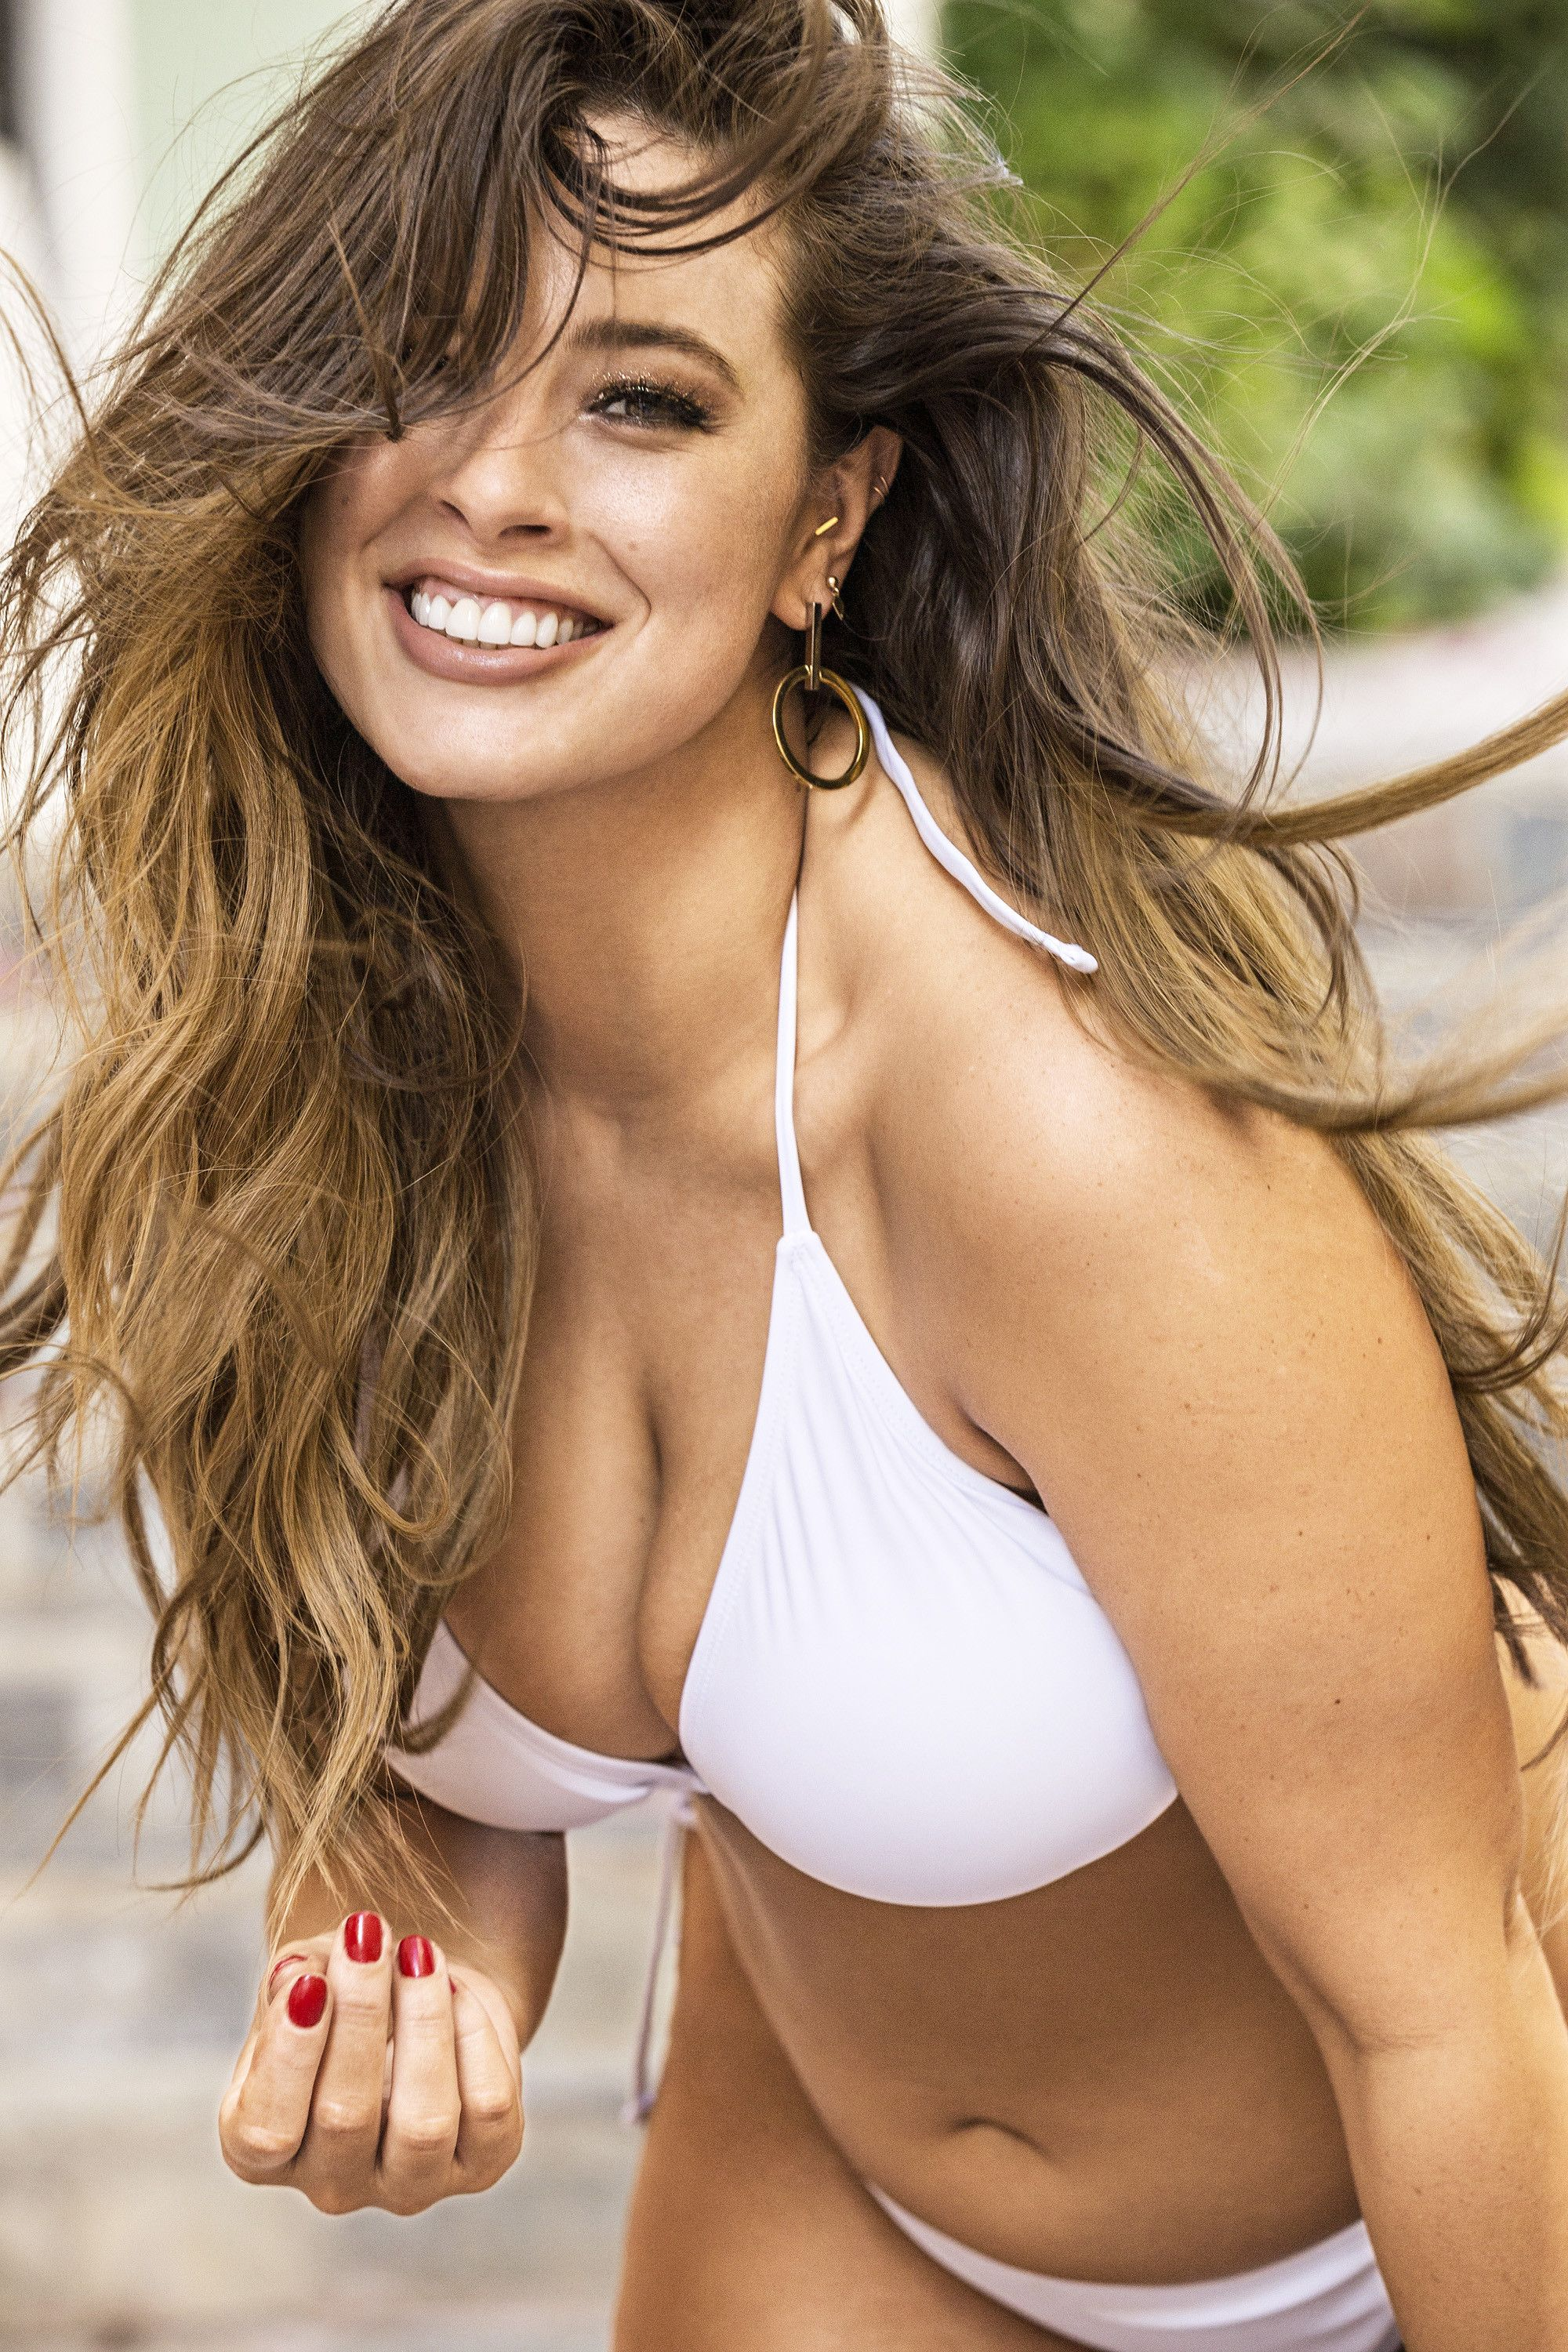 c34fdc1551f Who What Wear interviews Ashley Graham about her new Swimsuits for All  campaign